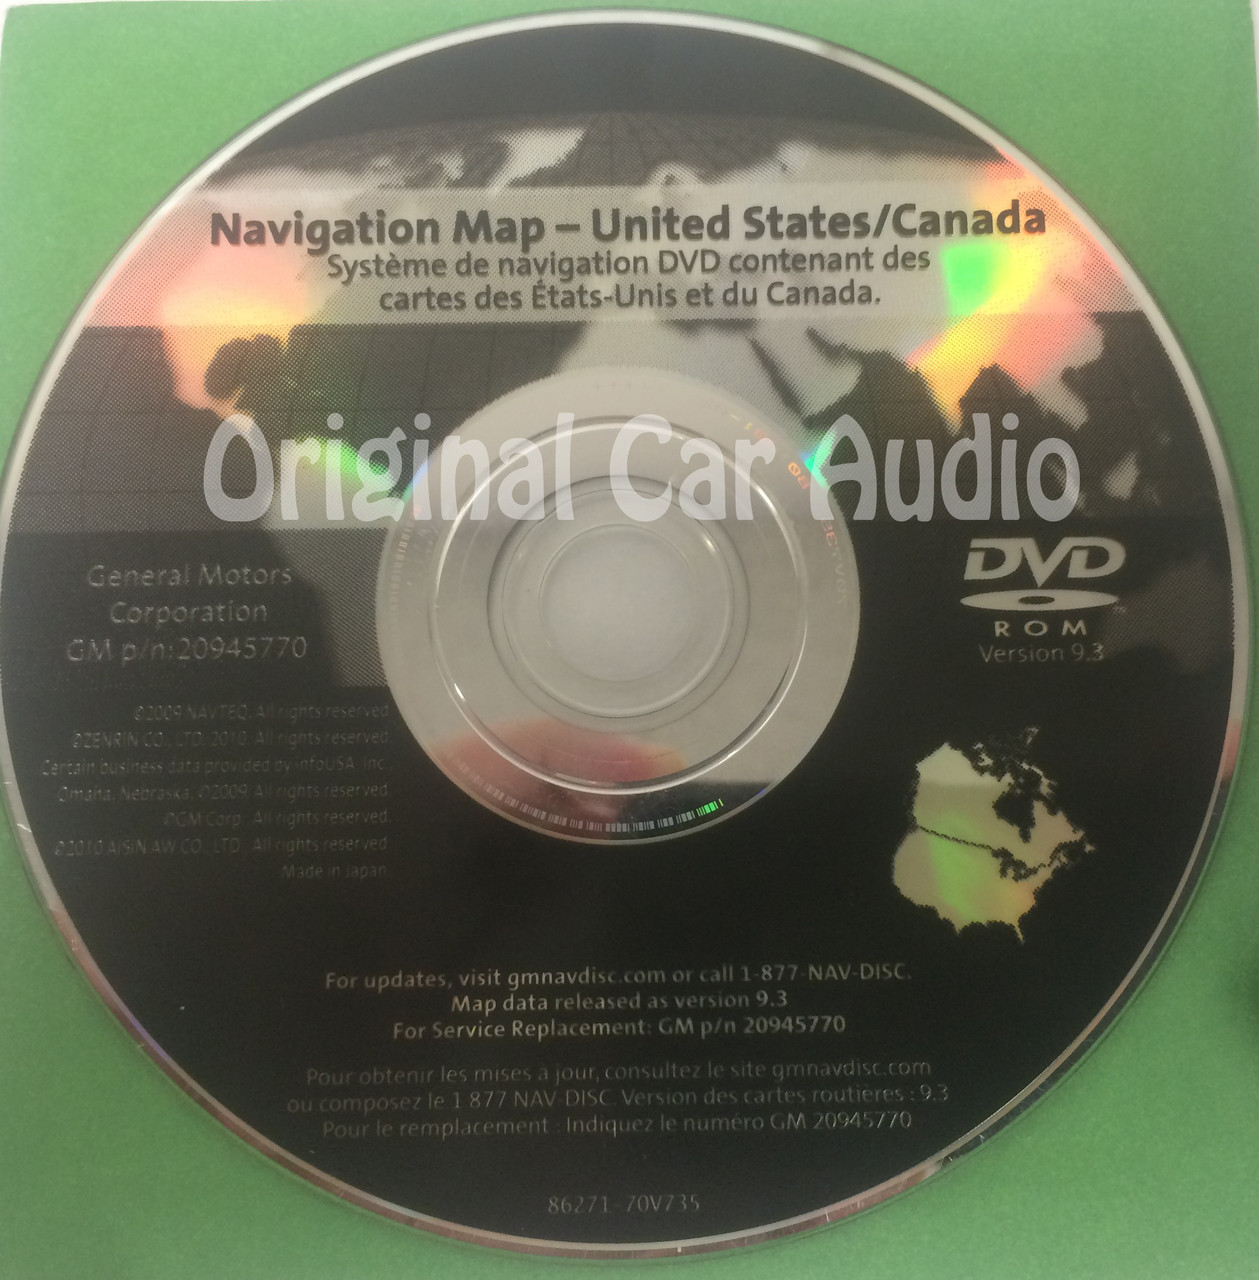 GM Satellite Navigation System CD 20945770 Version 9.3 - CD4Car